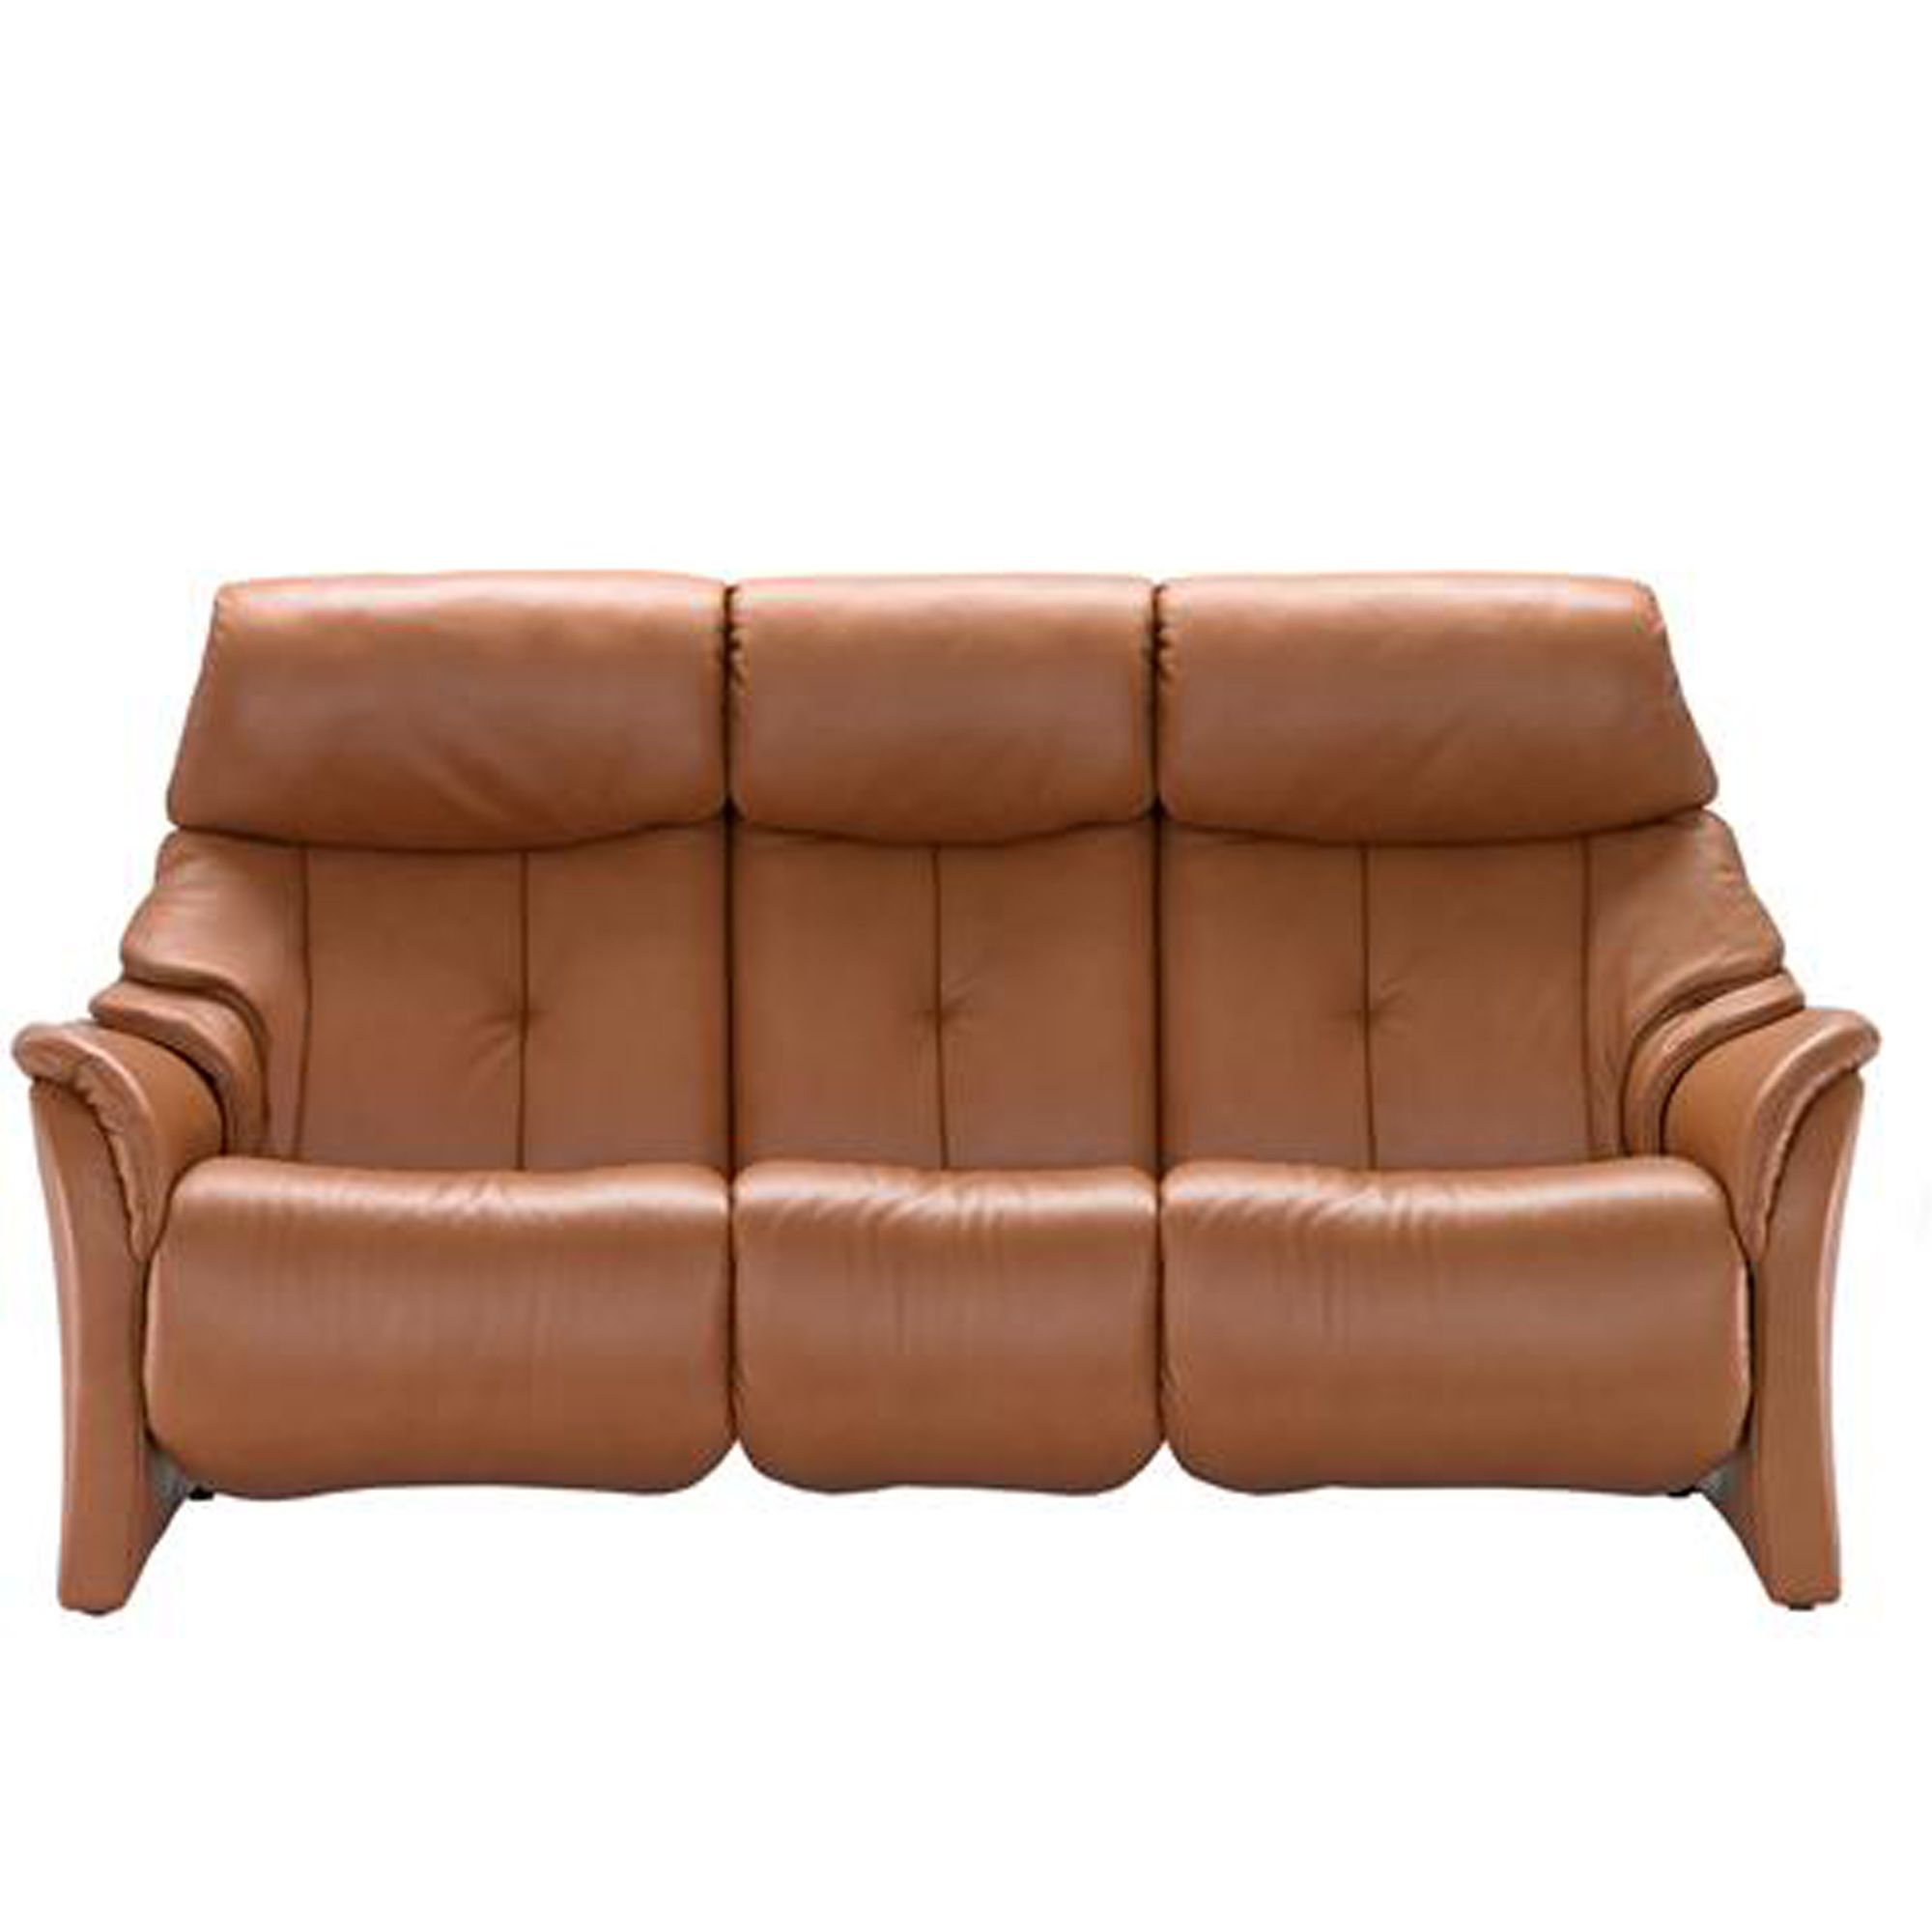 Himolla Chester 3 Seater Sofa Cookes Furniture Cookes